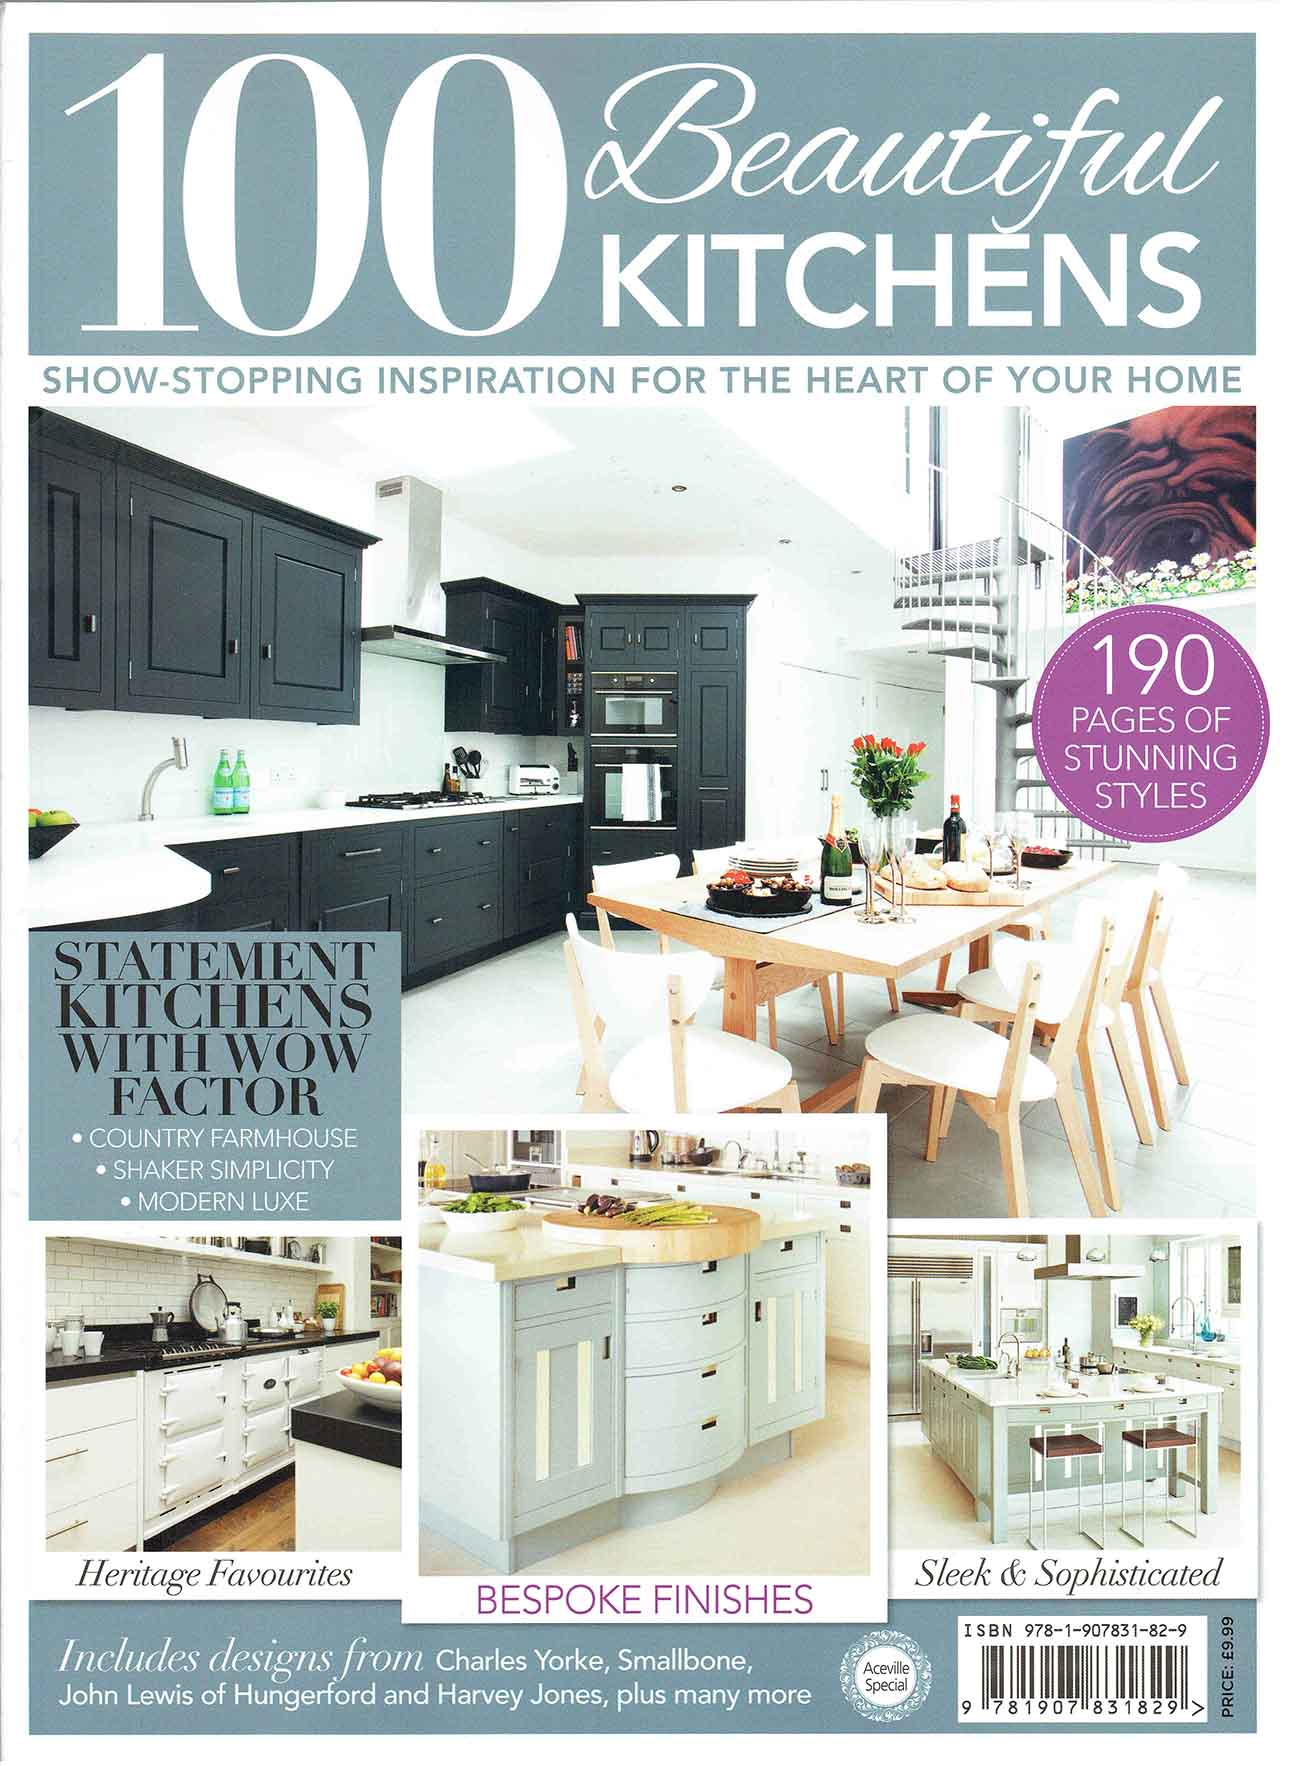 100 Beautiful Kitchens, April 2015